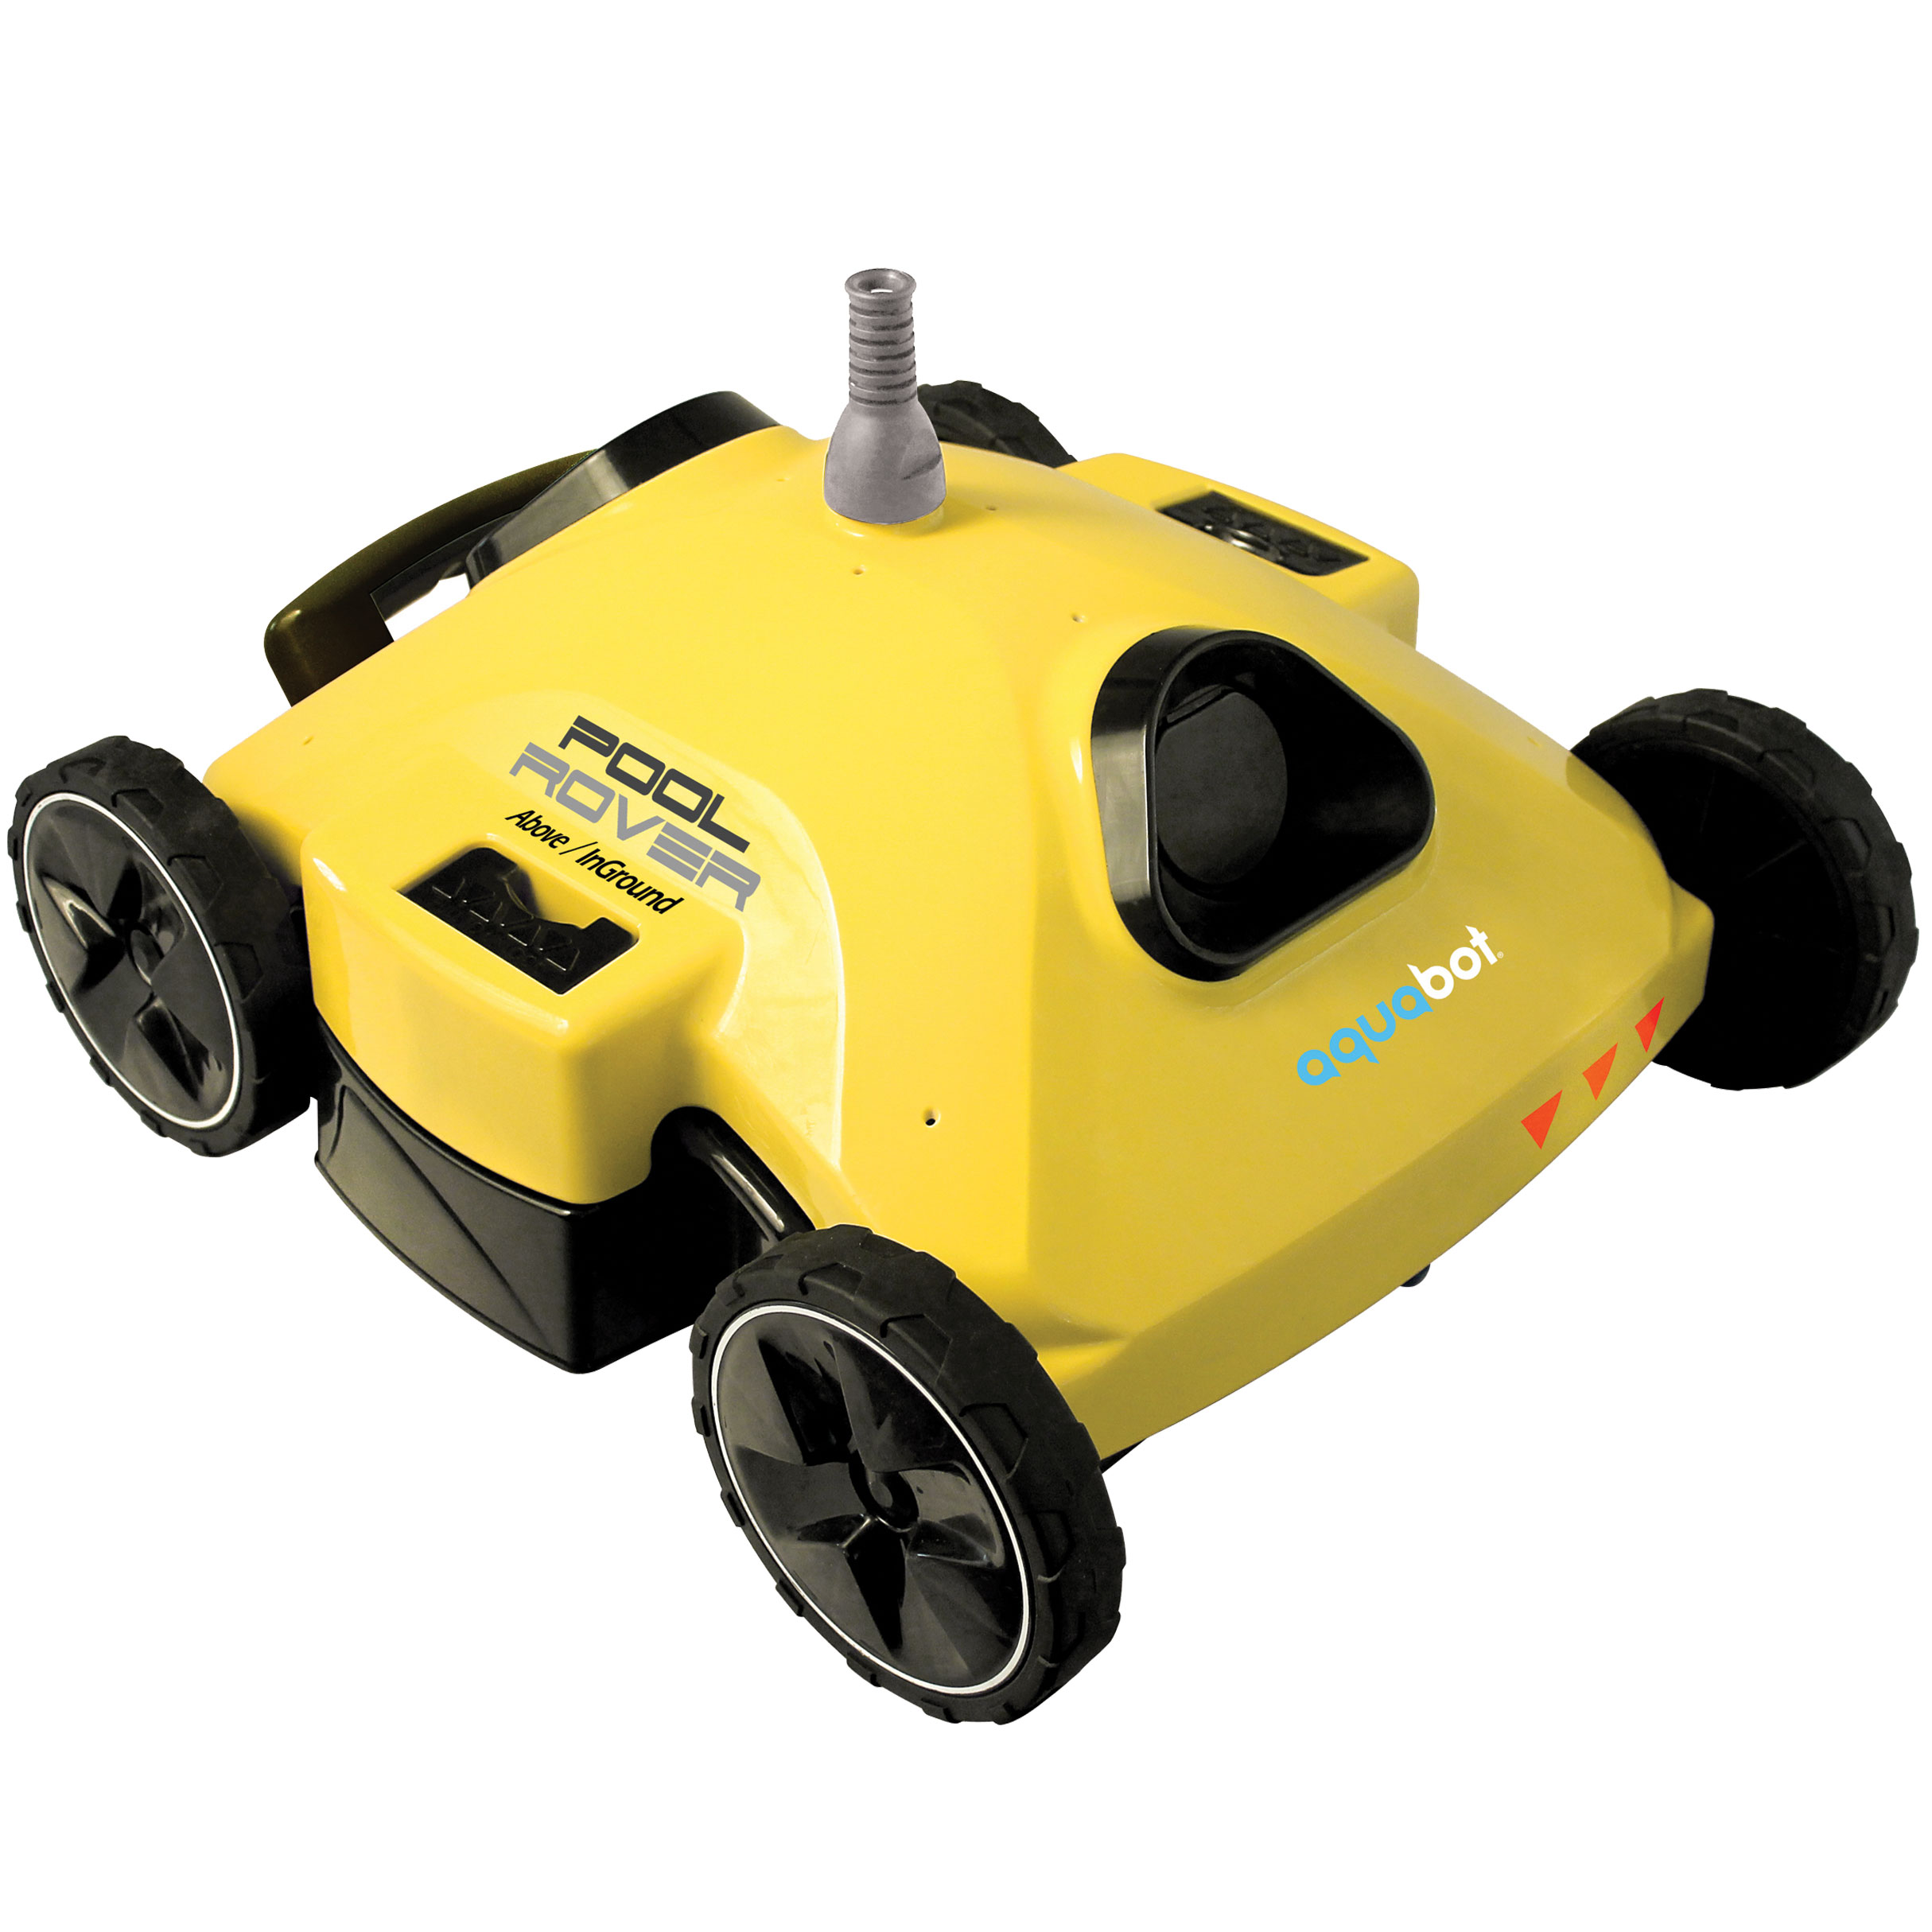 Aquabot Pool Rover S2-50 Automatic Robotic Pool Cleaner